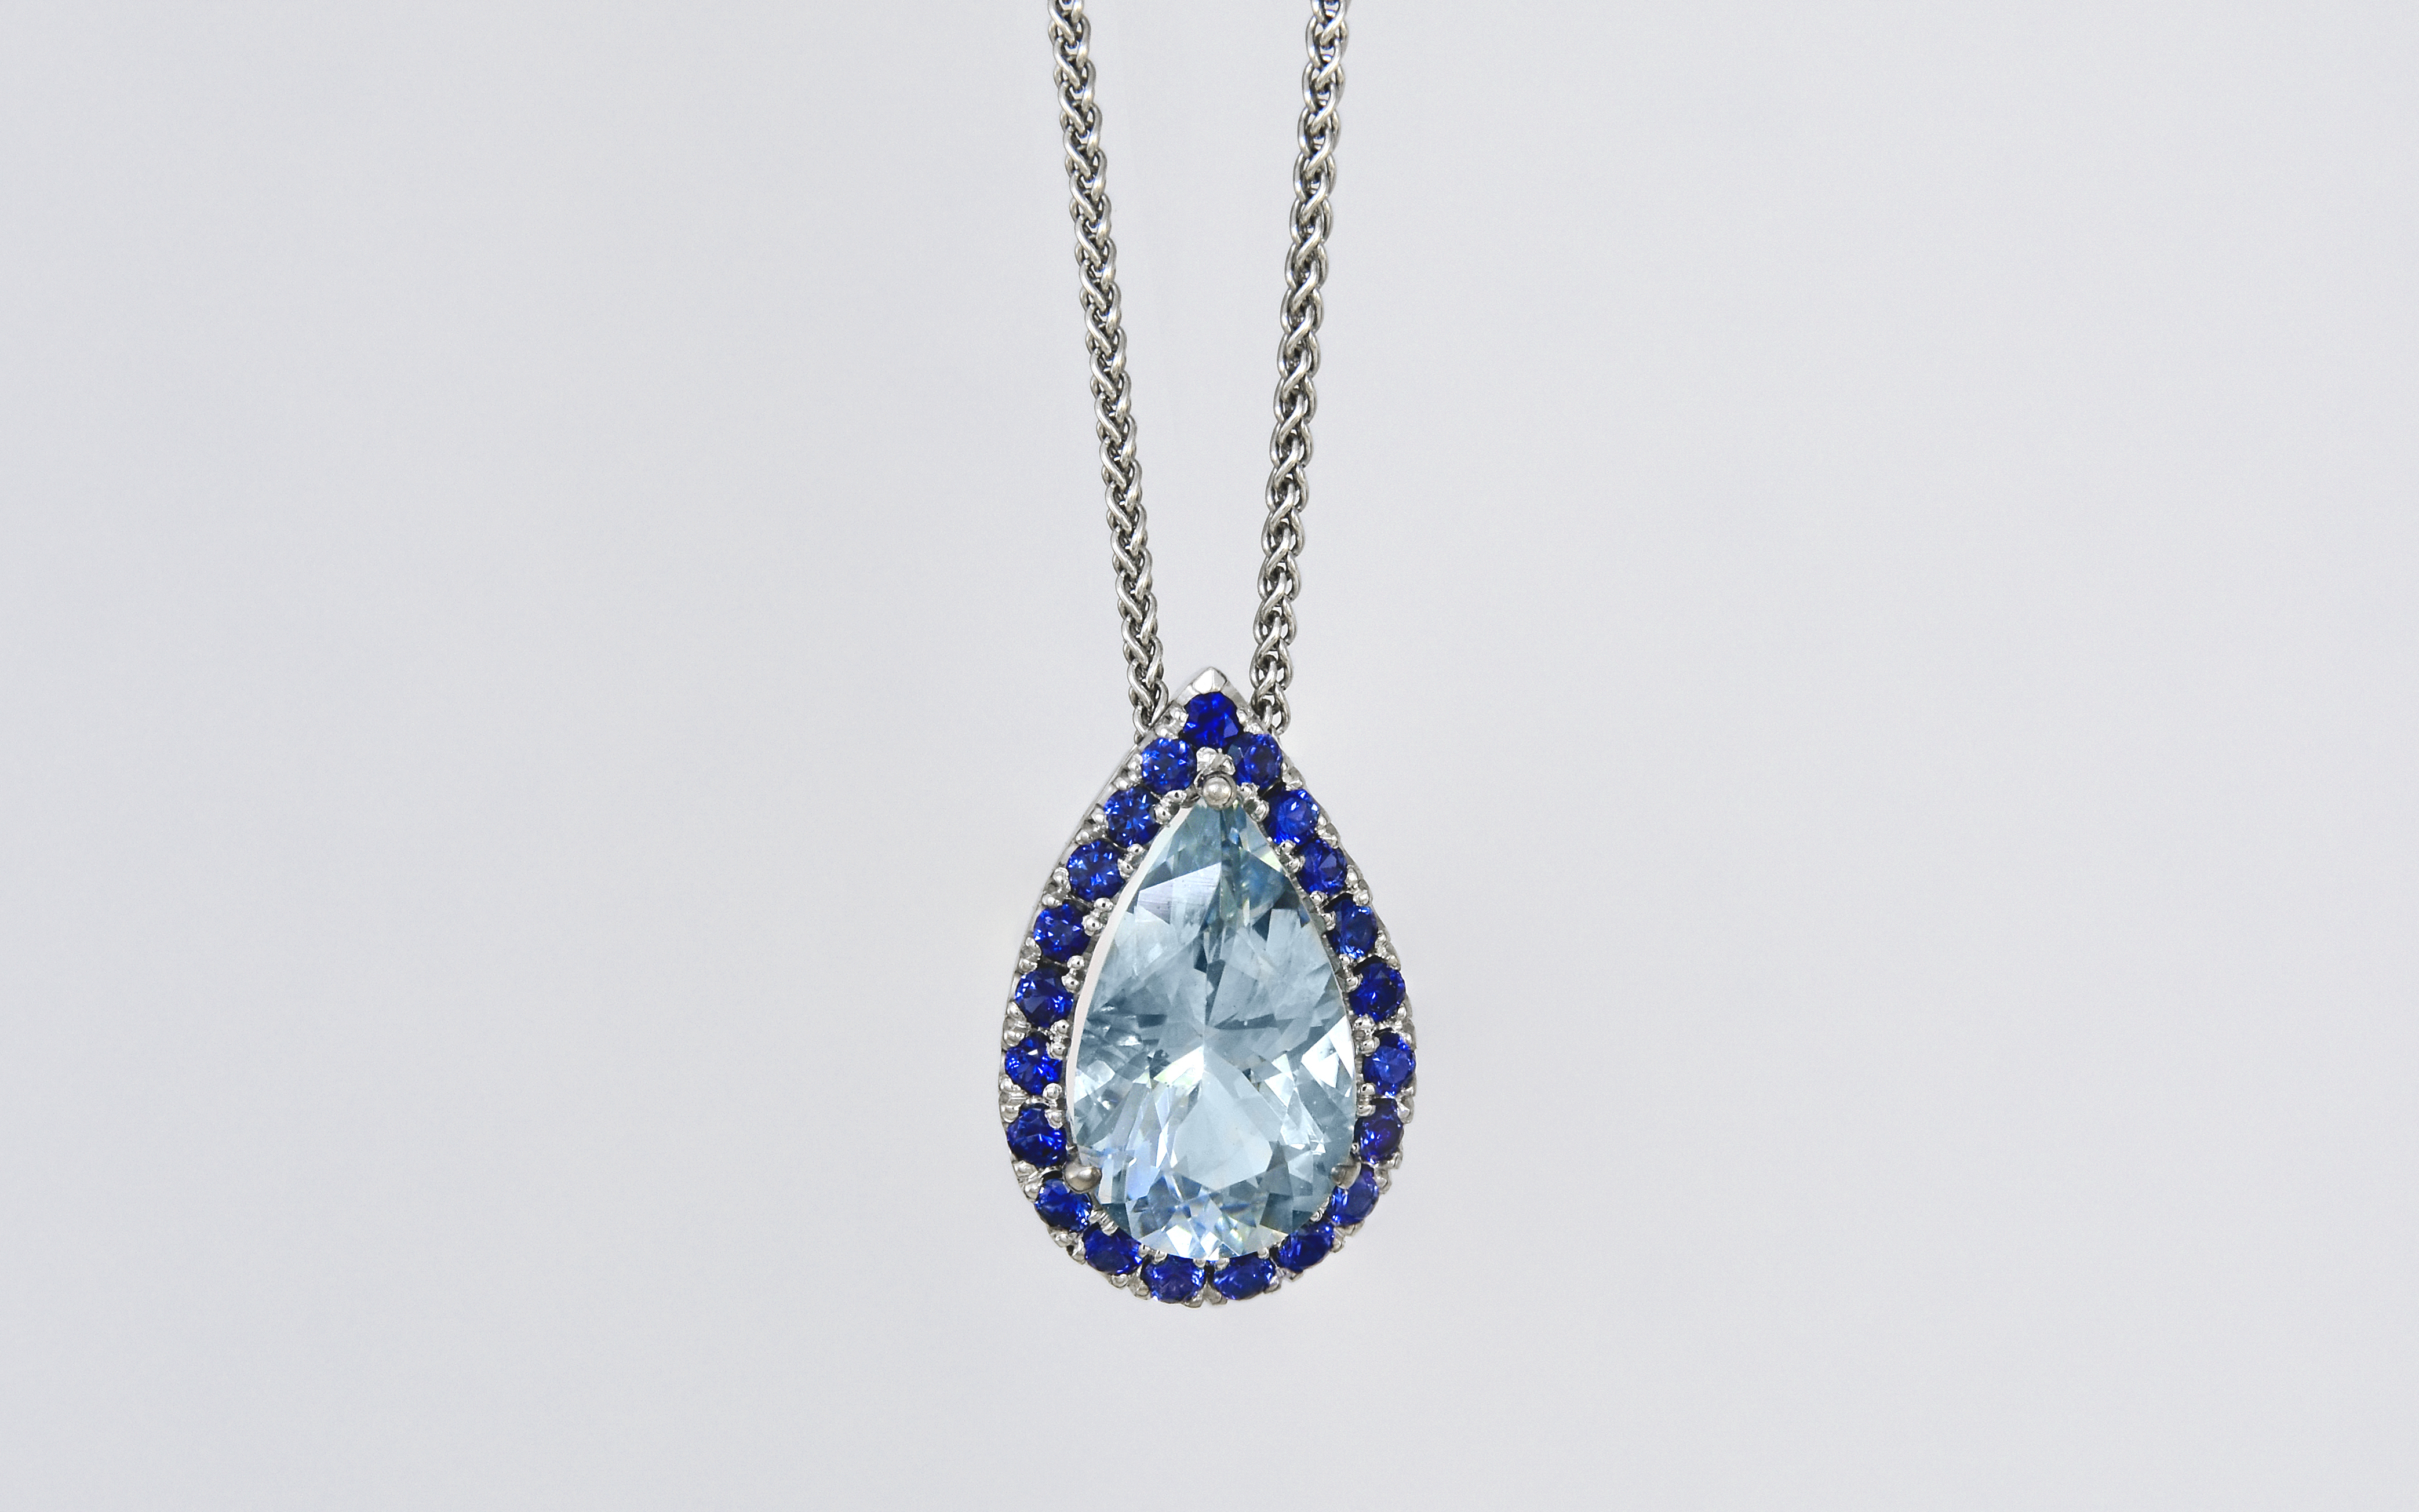 Pendants | Dutillesjewelry Pertaining To Most Recent Sapphire, Aquamarine And Diamond Necklaces (View 18 of 25)